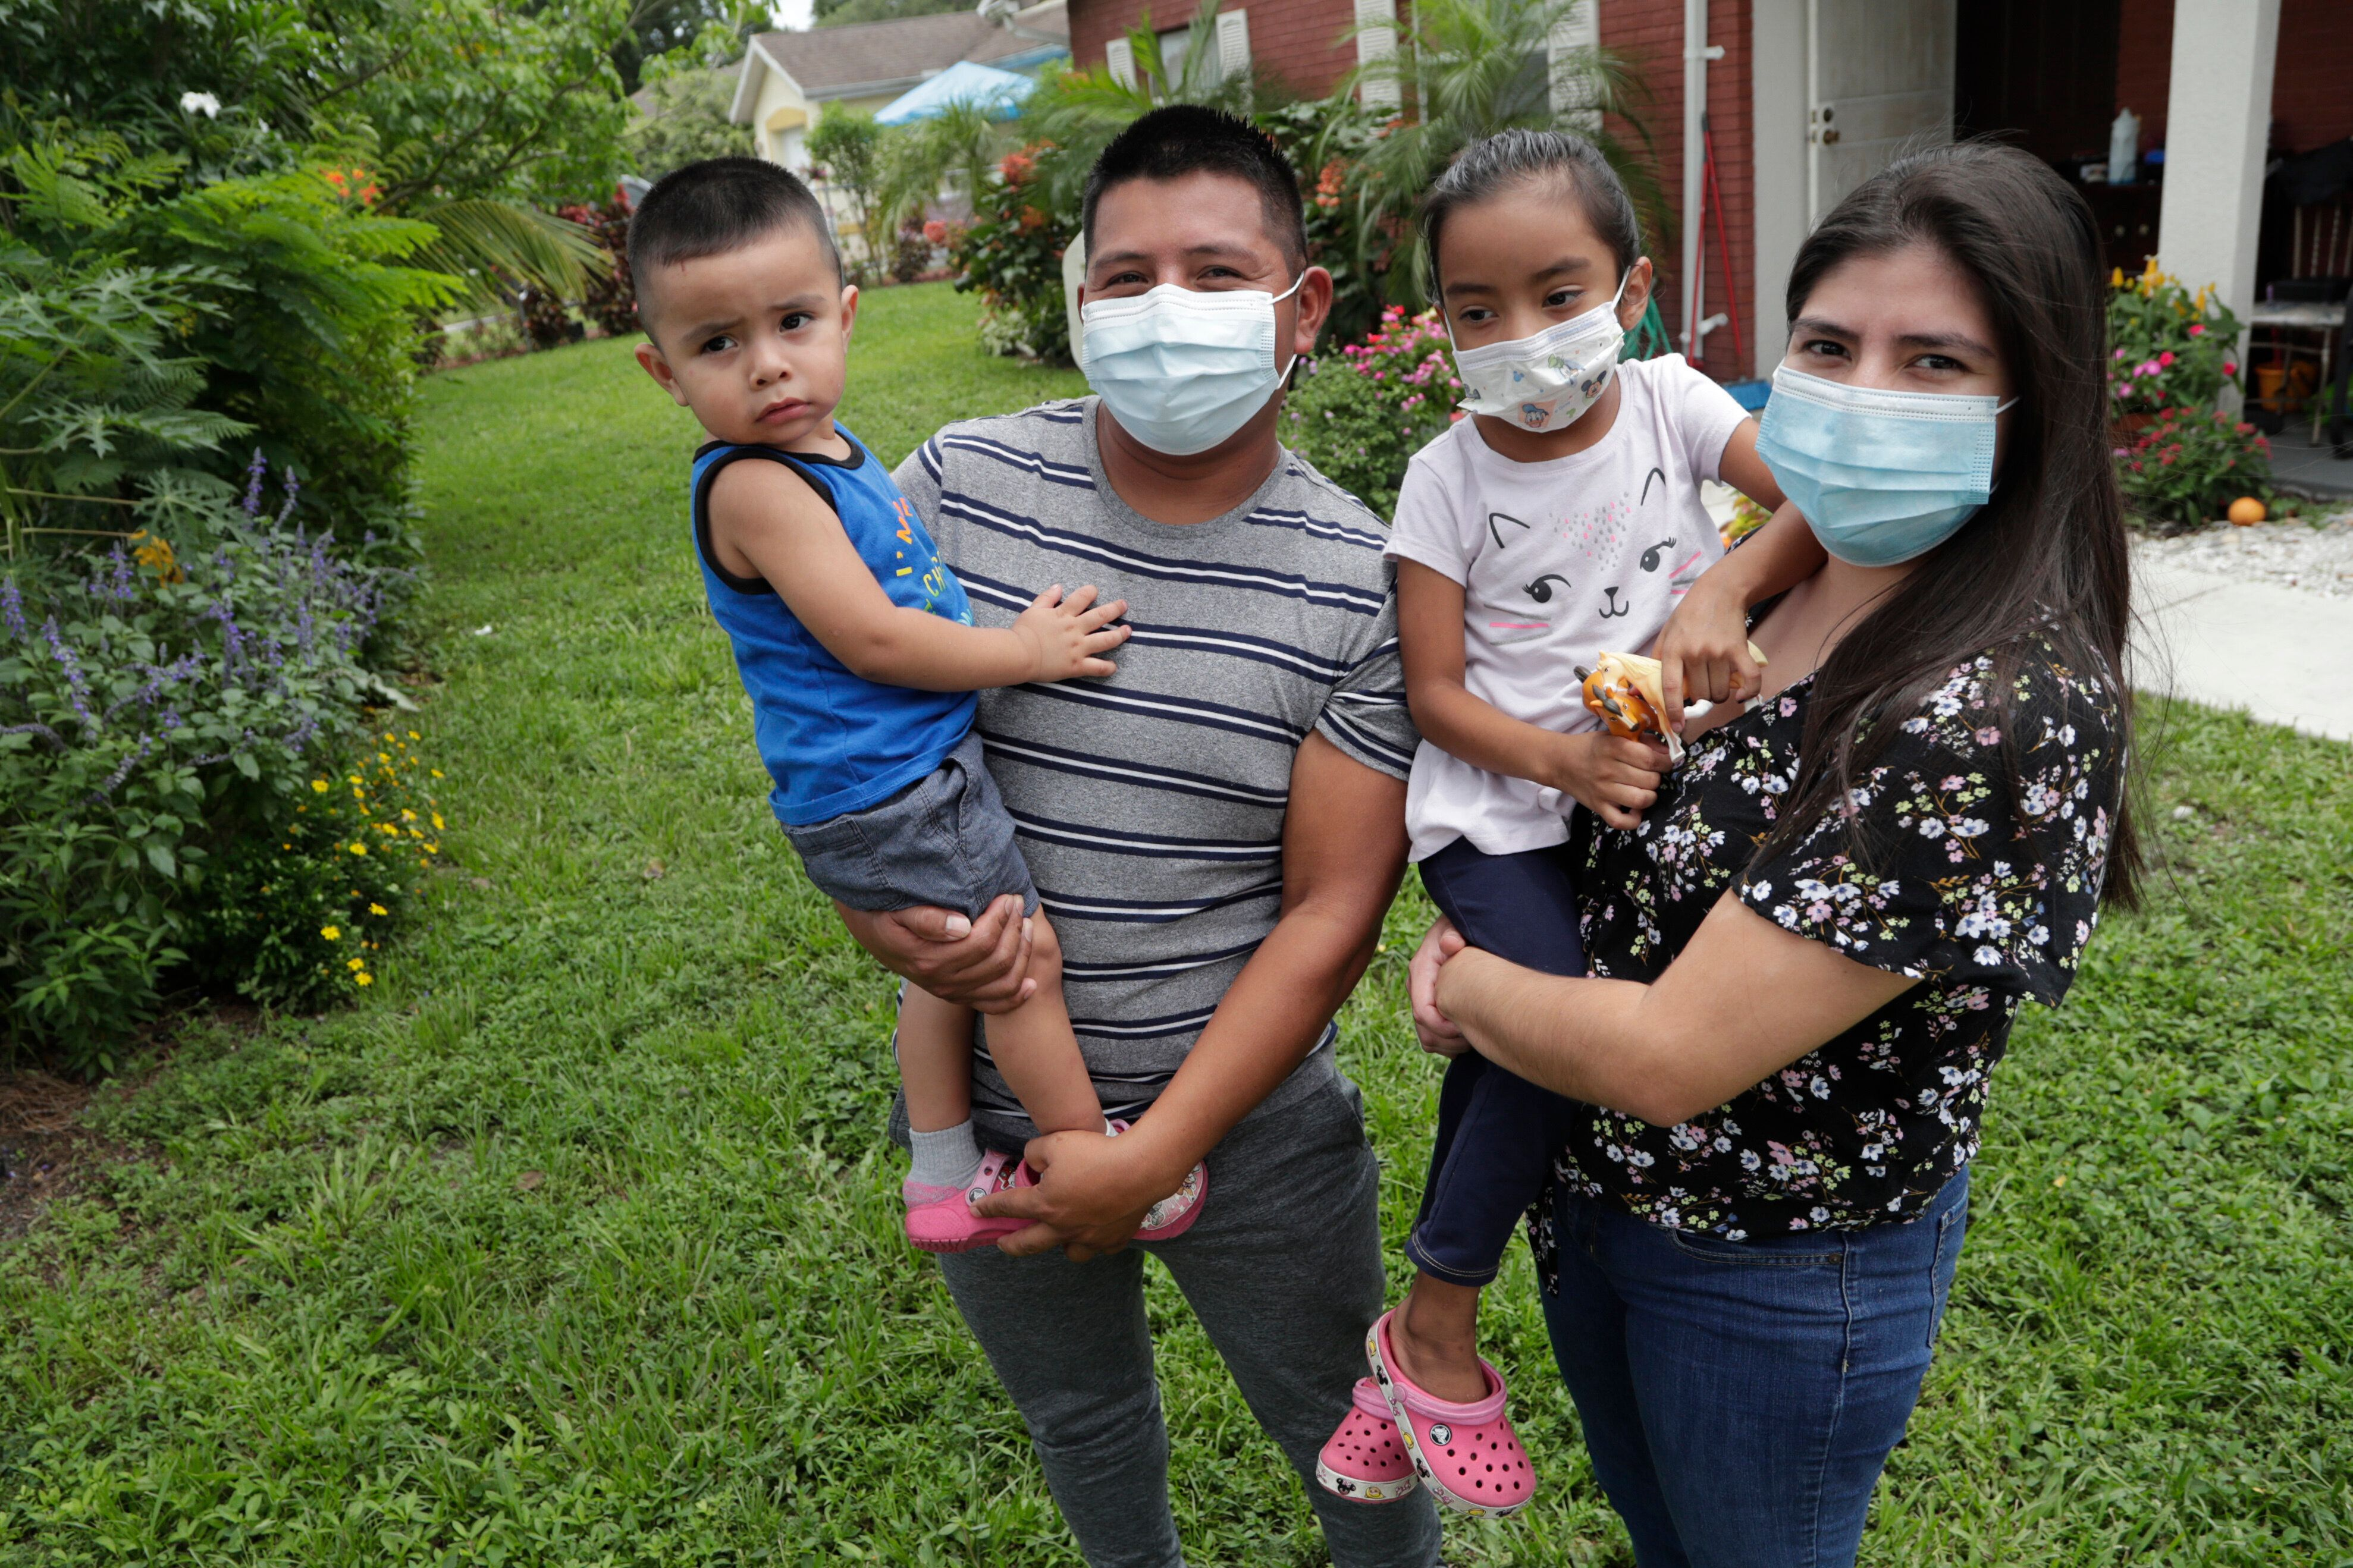 Elbin Sales, second from left, poses for a photograph with his wife, Yecenia Solorzano, right, and children Jordi Sales, left